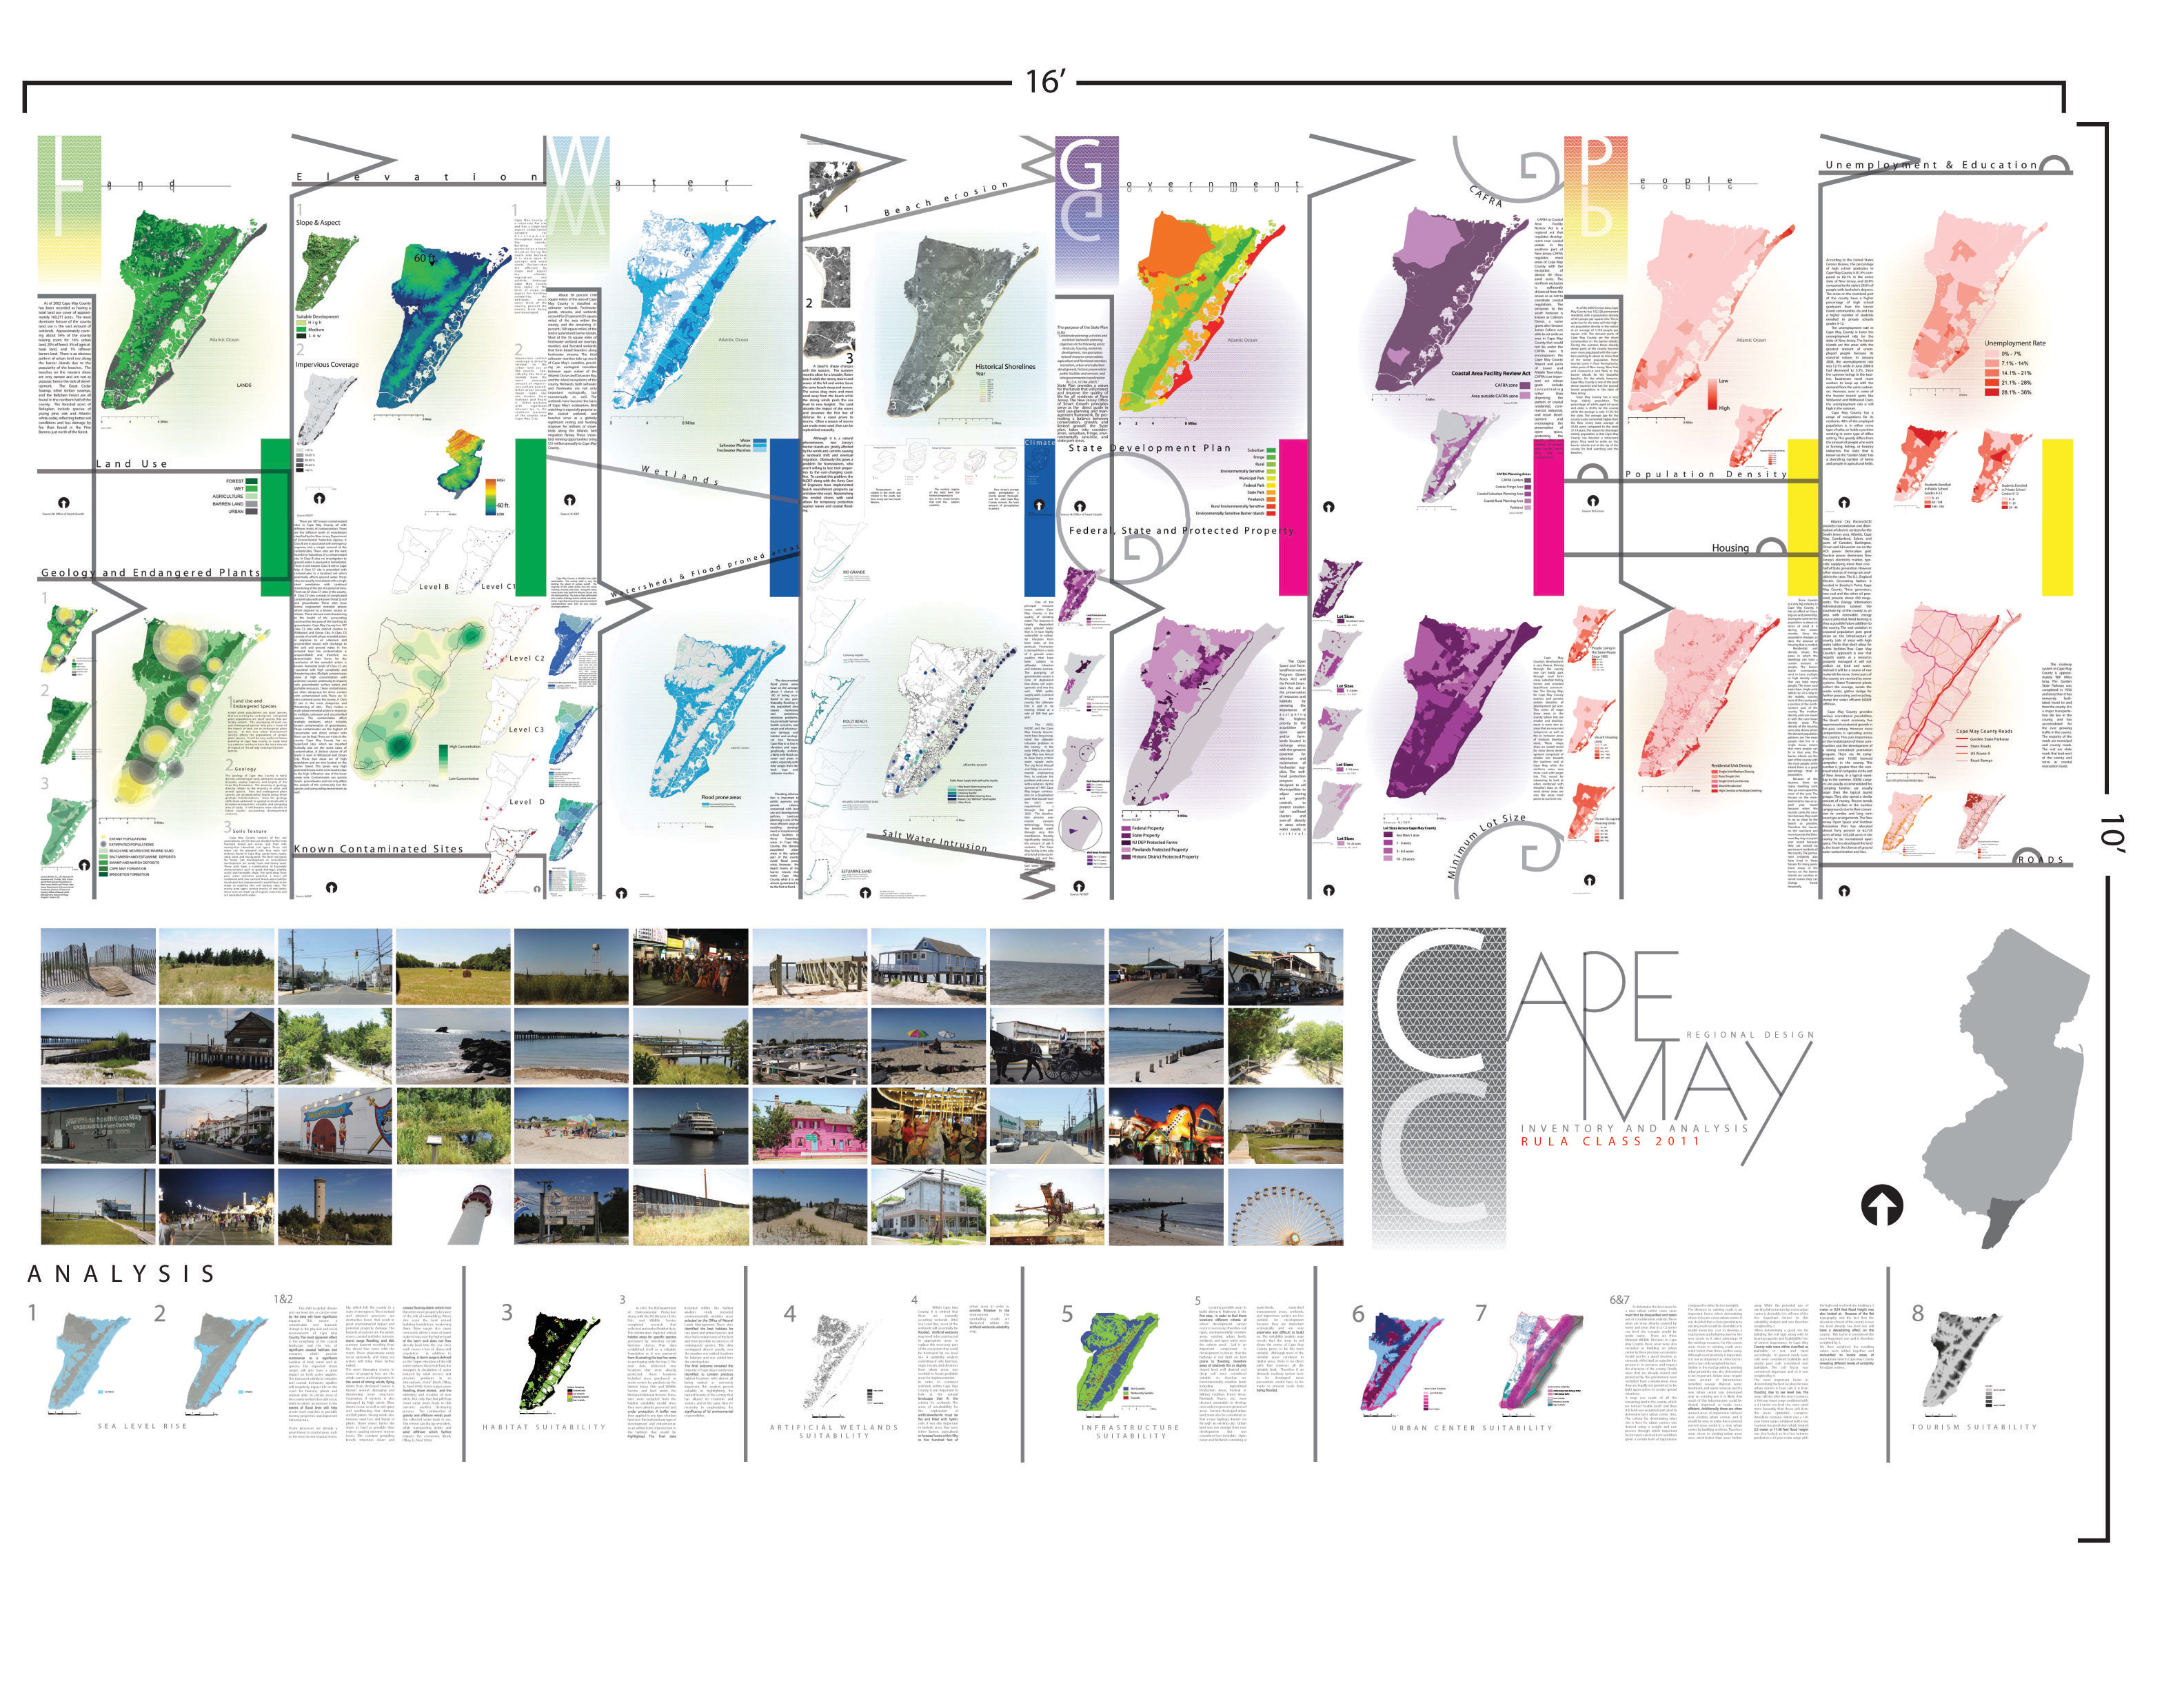 1000 images about site analysis on pinterest for Spatial analysis architecture